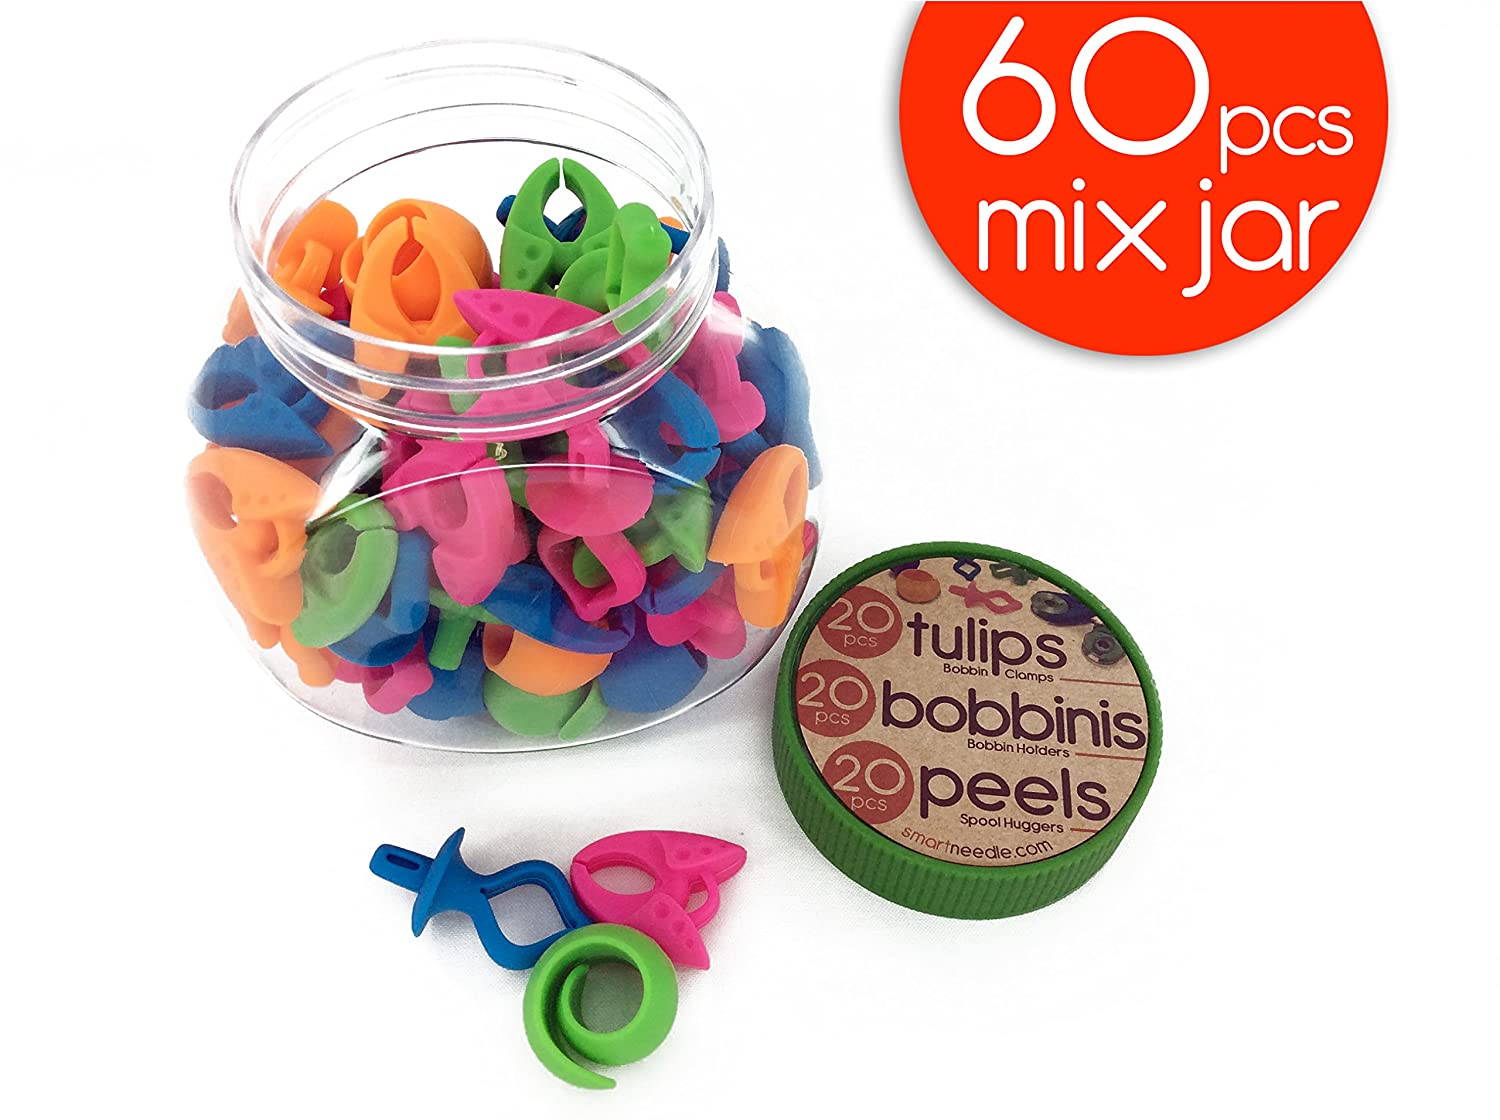 MIX NOTIONS JAR (60 Pieces) - 20 Bobbinis (bobbin holders), 20 Peels (Spool Huggers), 20 Tulips (Bobbin Clamps) Smartneedle.inc